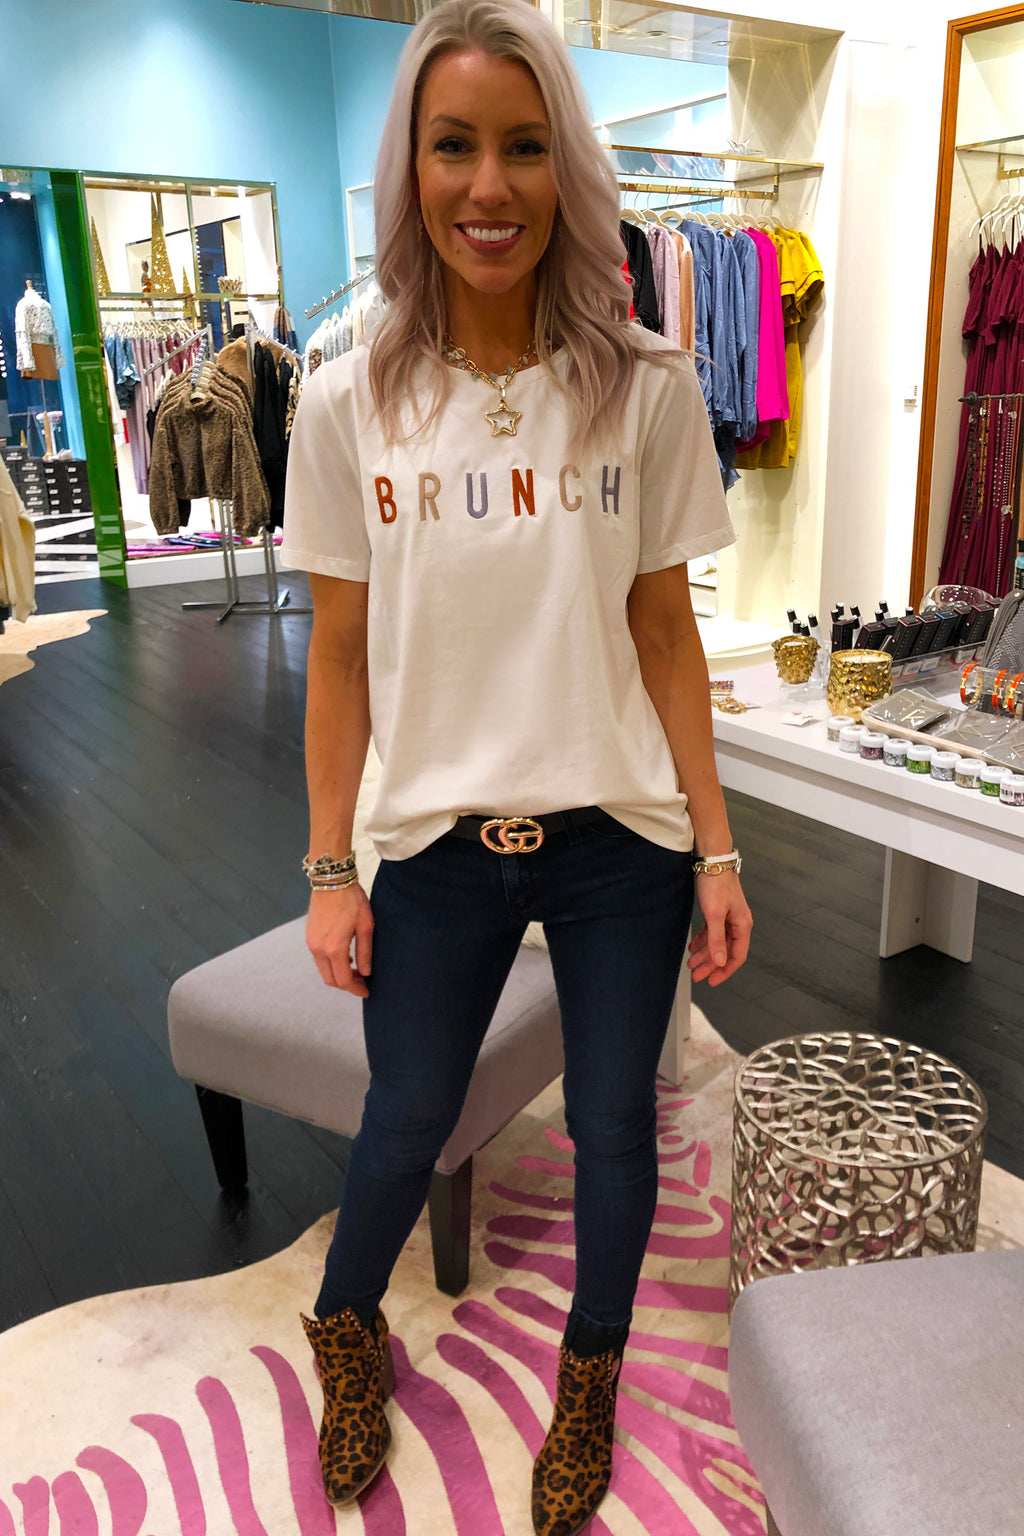 Brunch Embroidered Graphic Tee - Kendry Collection Boutique